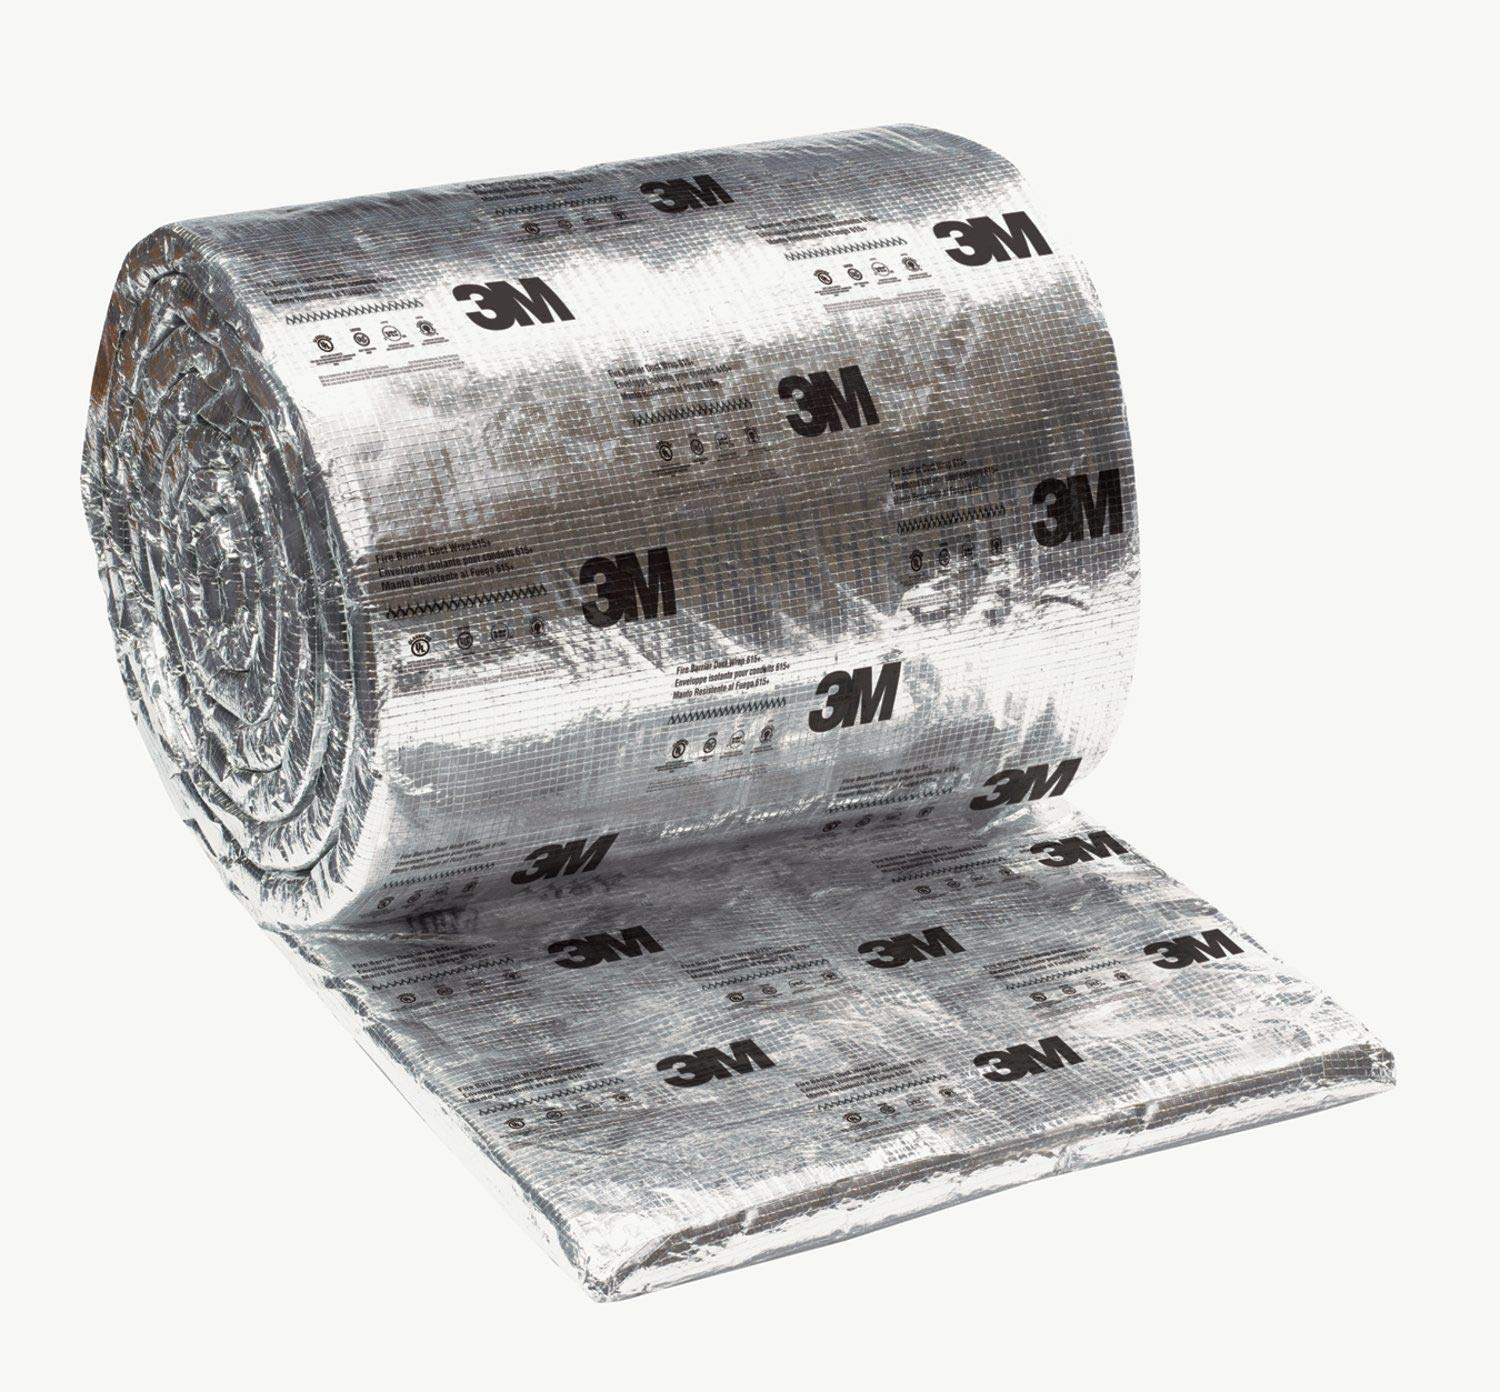 3M Fire Barrier Duct Wrap 615+, 24 in x 25 ft, 1 roll/case by 3M